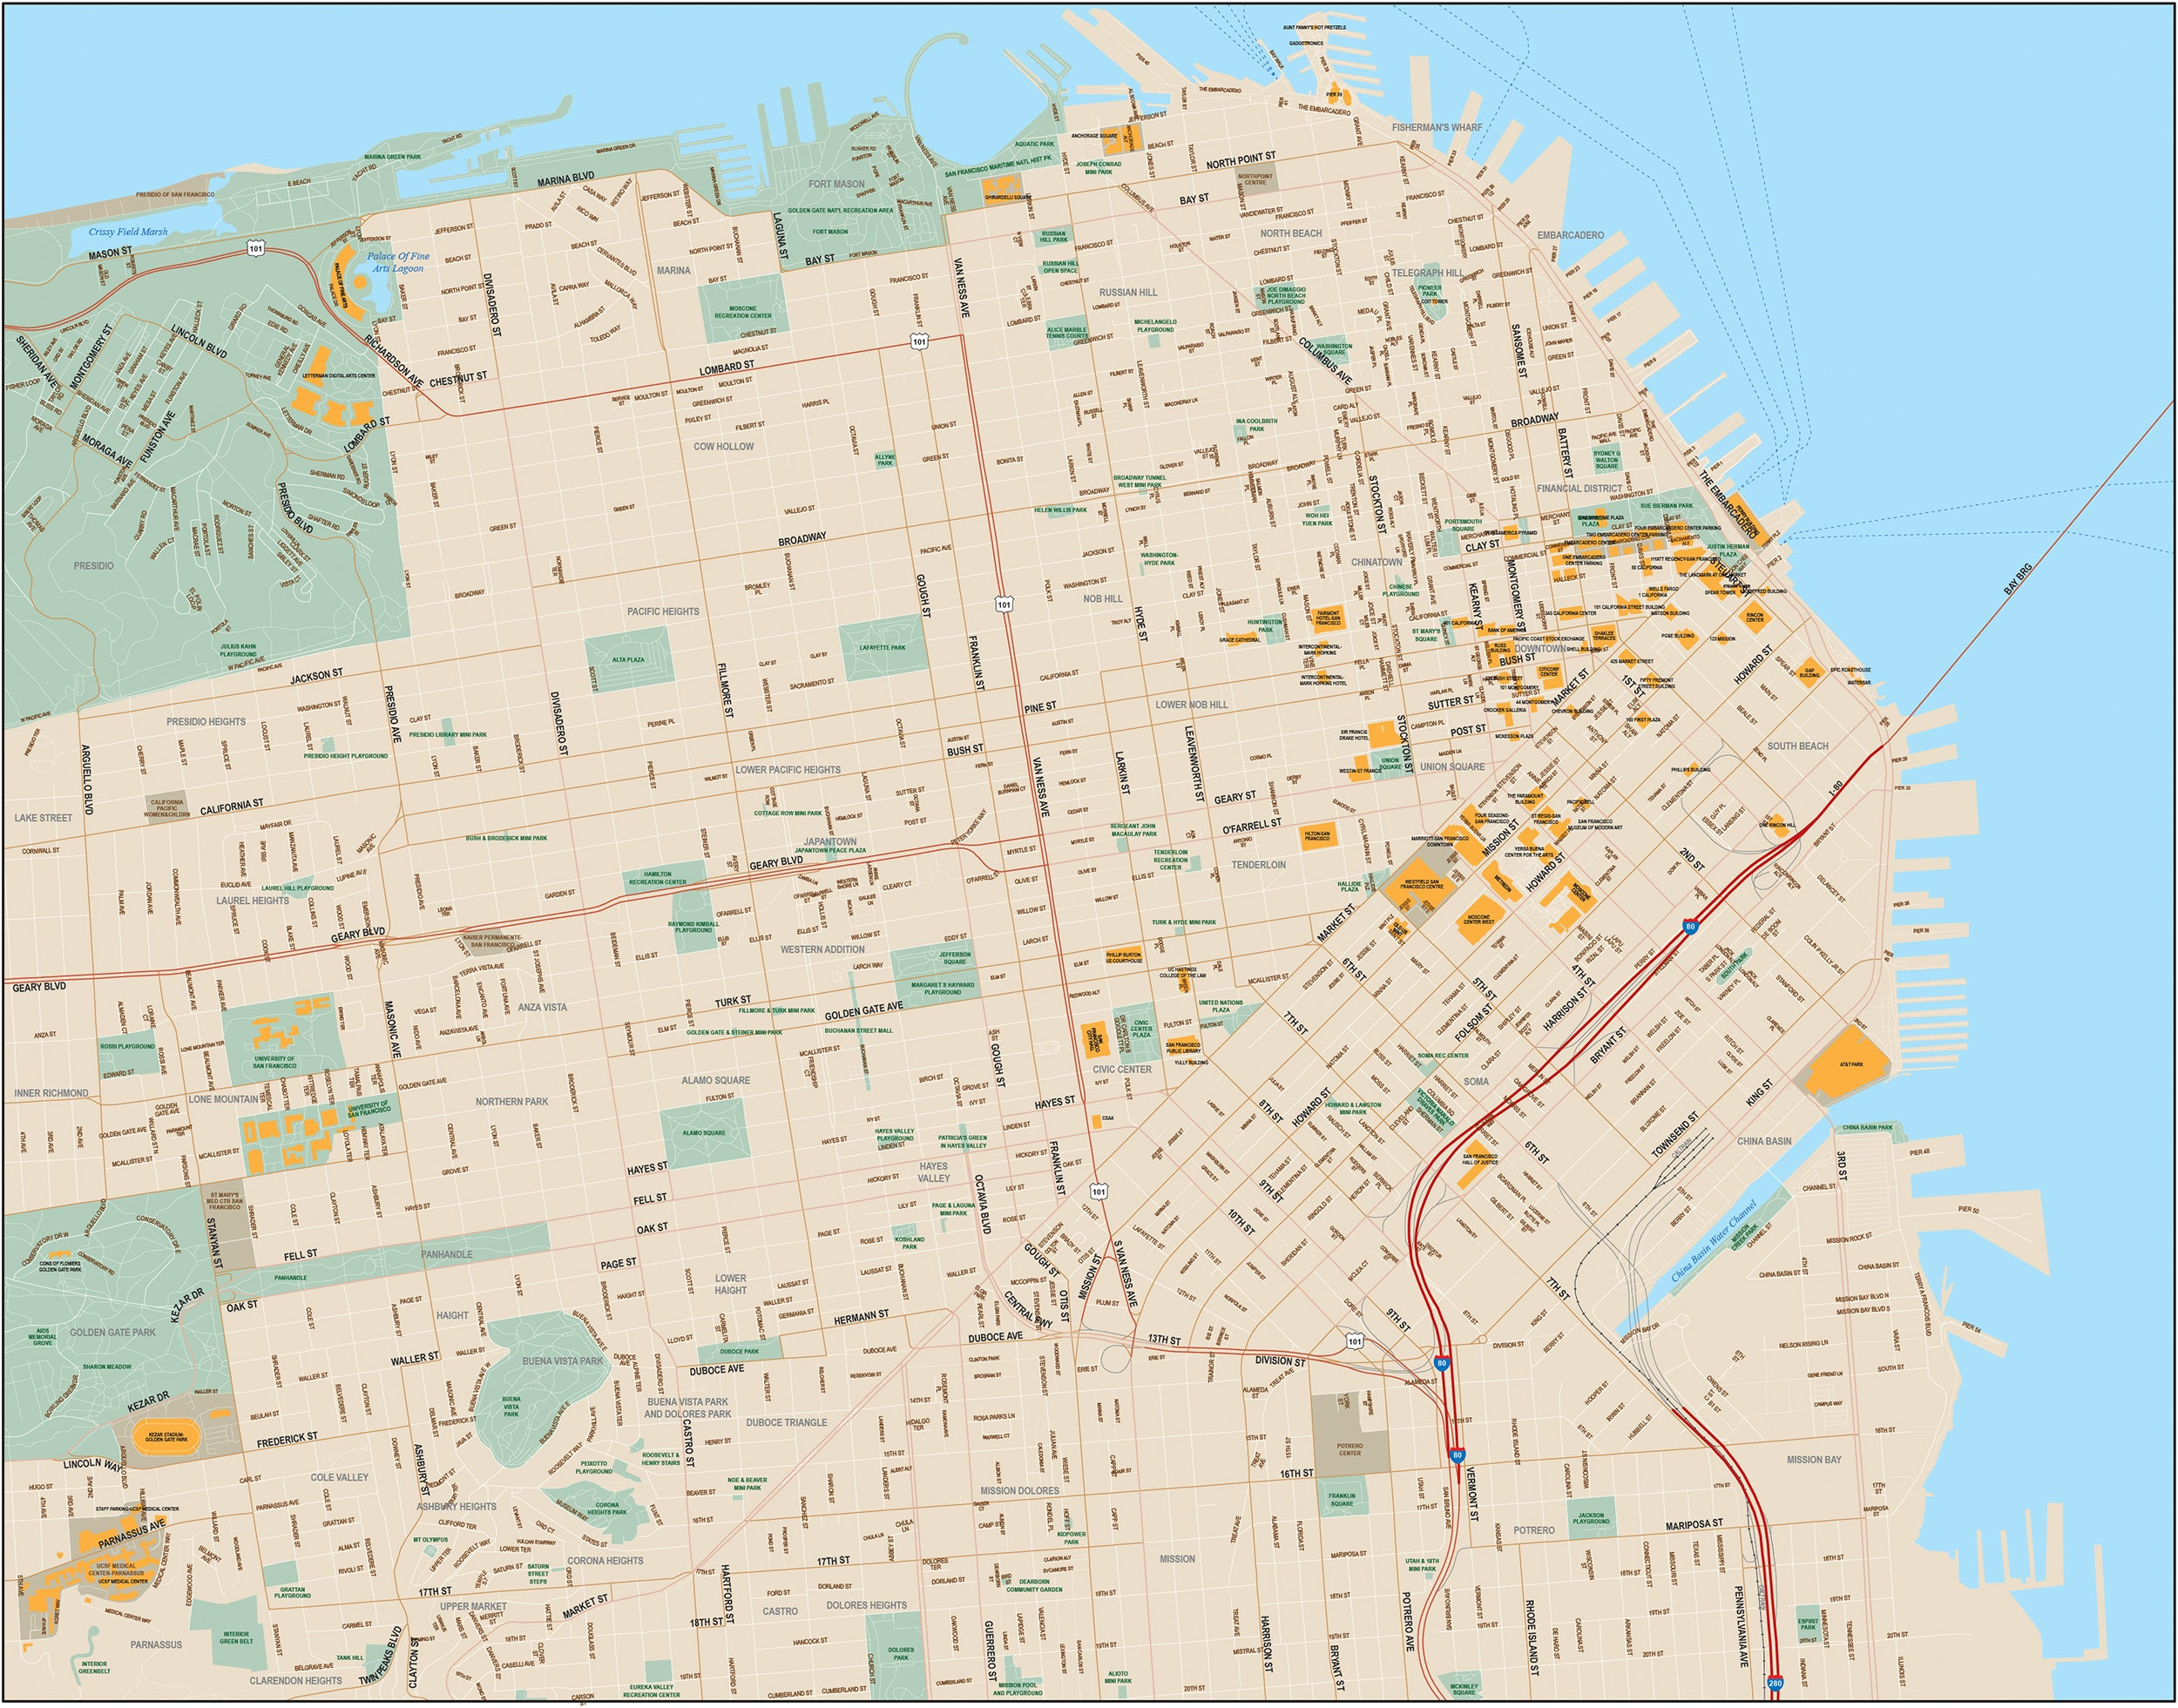 San Francisco Downtown Map with Local Streets - Illustrator Format ...